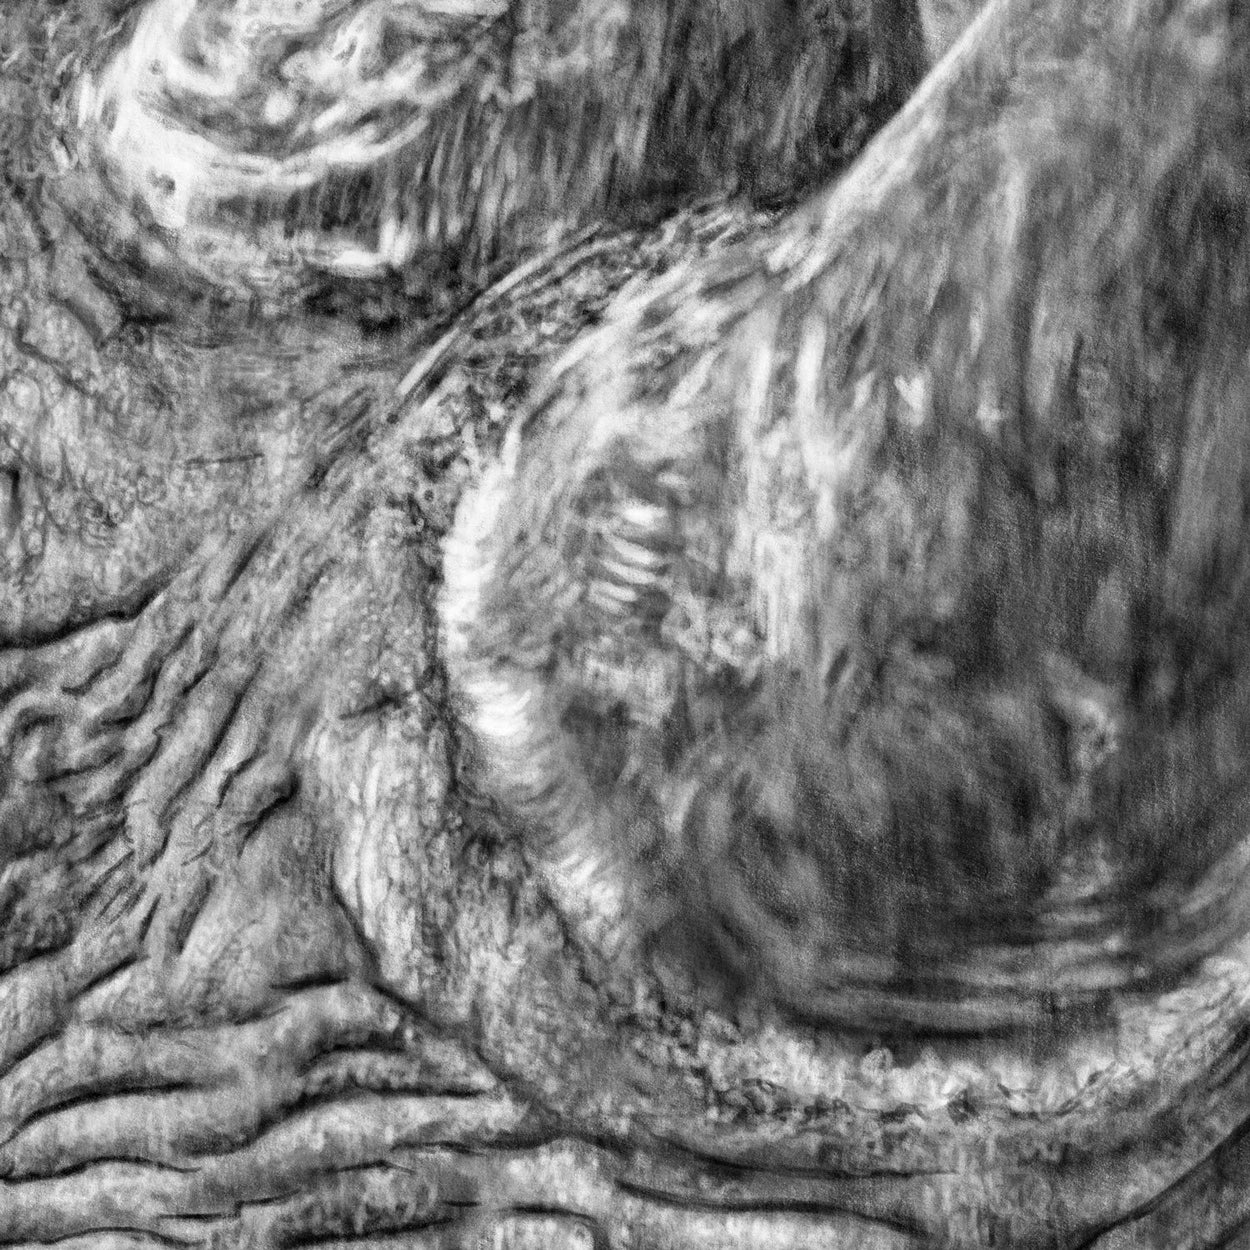 Rhino Digital Drawing Procreate Close-up - The Thriving Wild